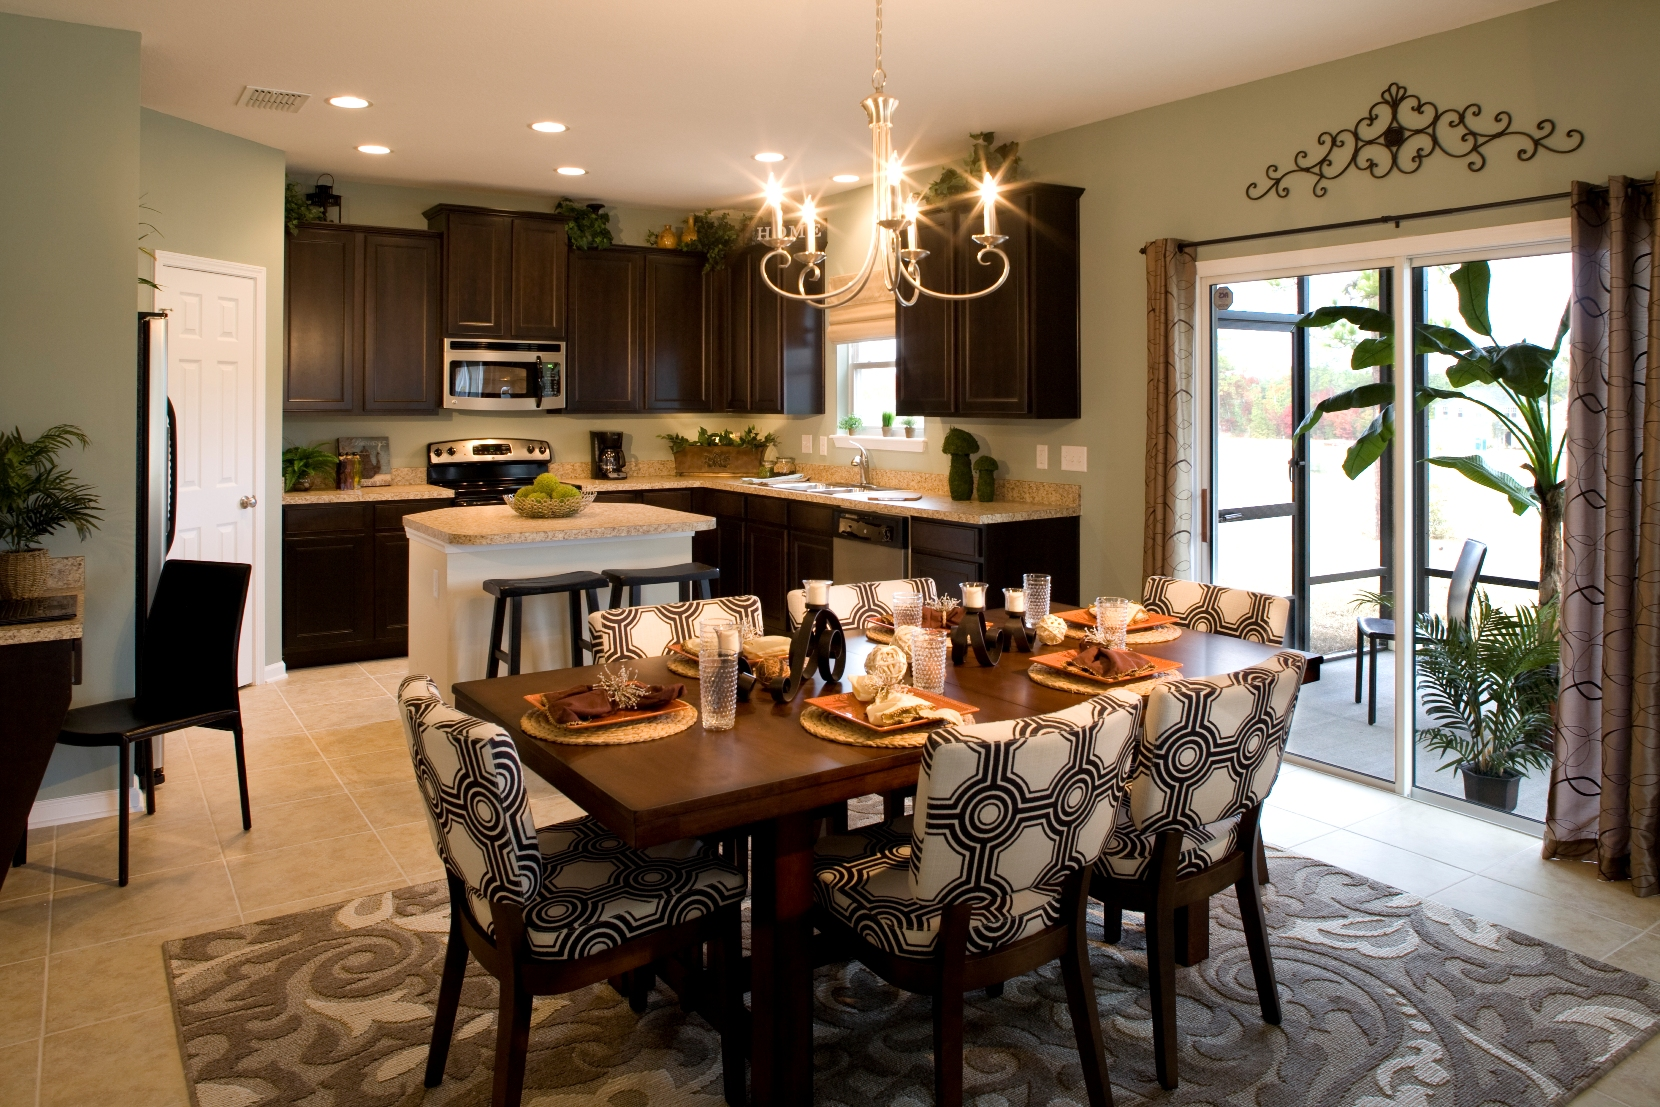 House Kitchen Model Of Greenpointe Homes Hosts Successful Grand Opening At Cedar